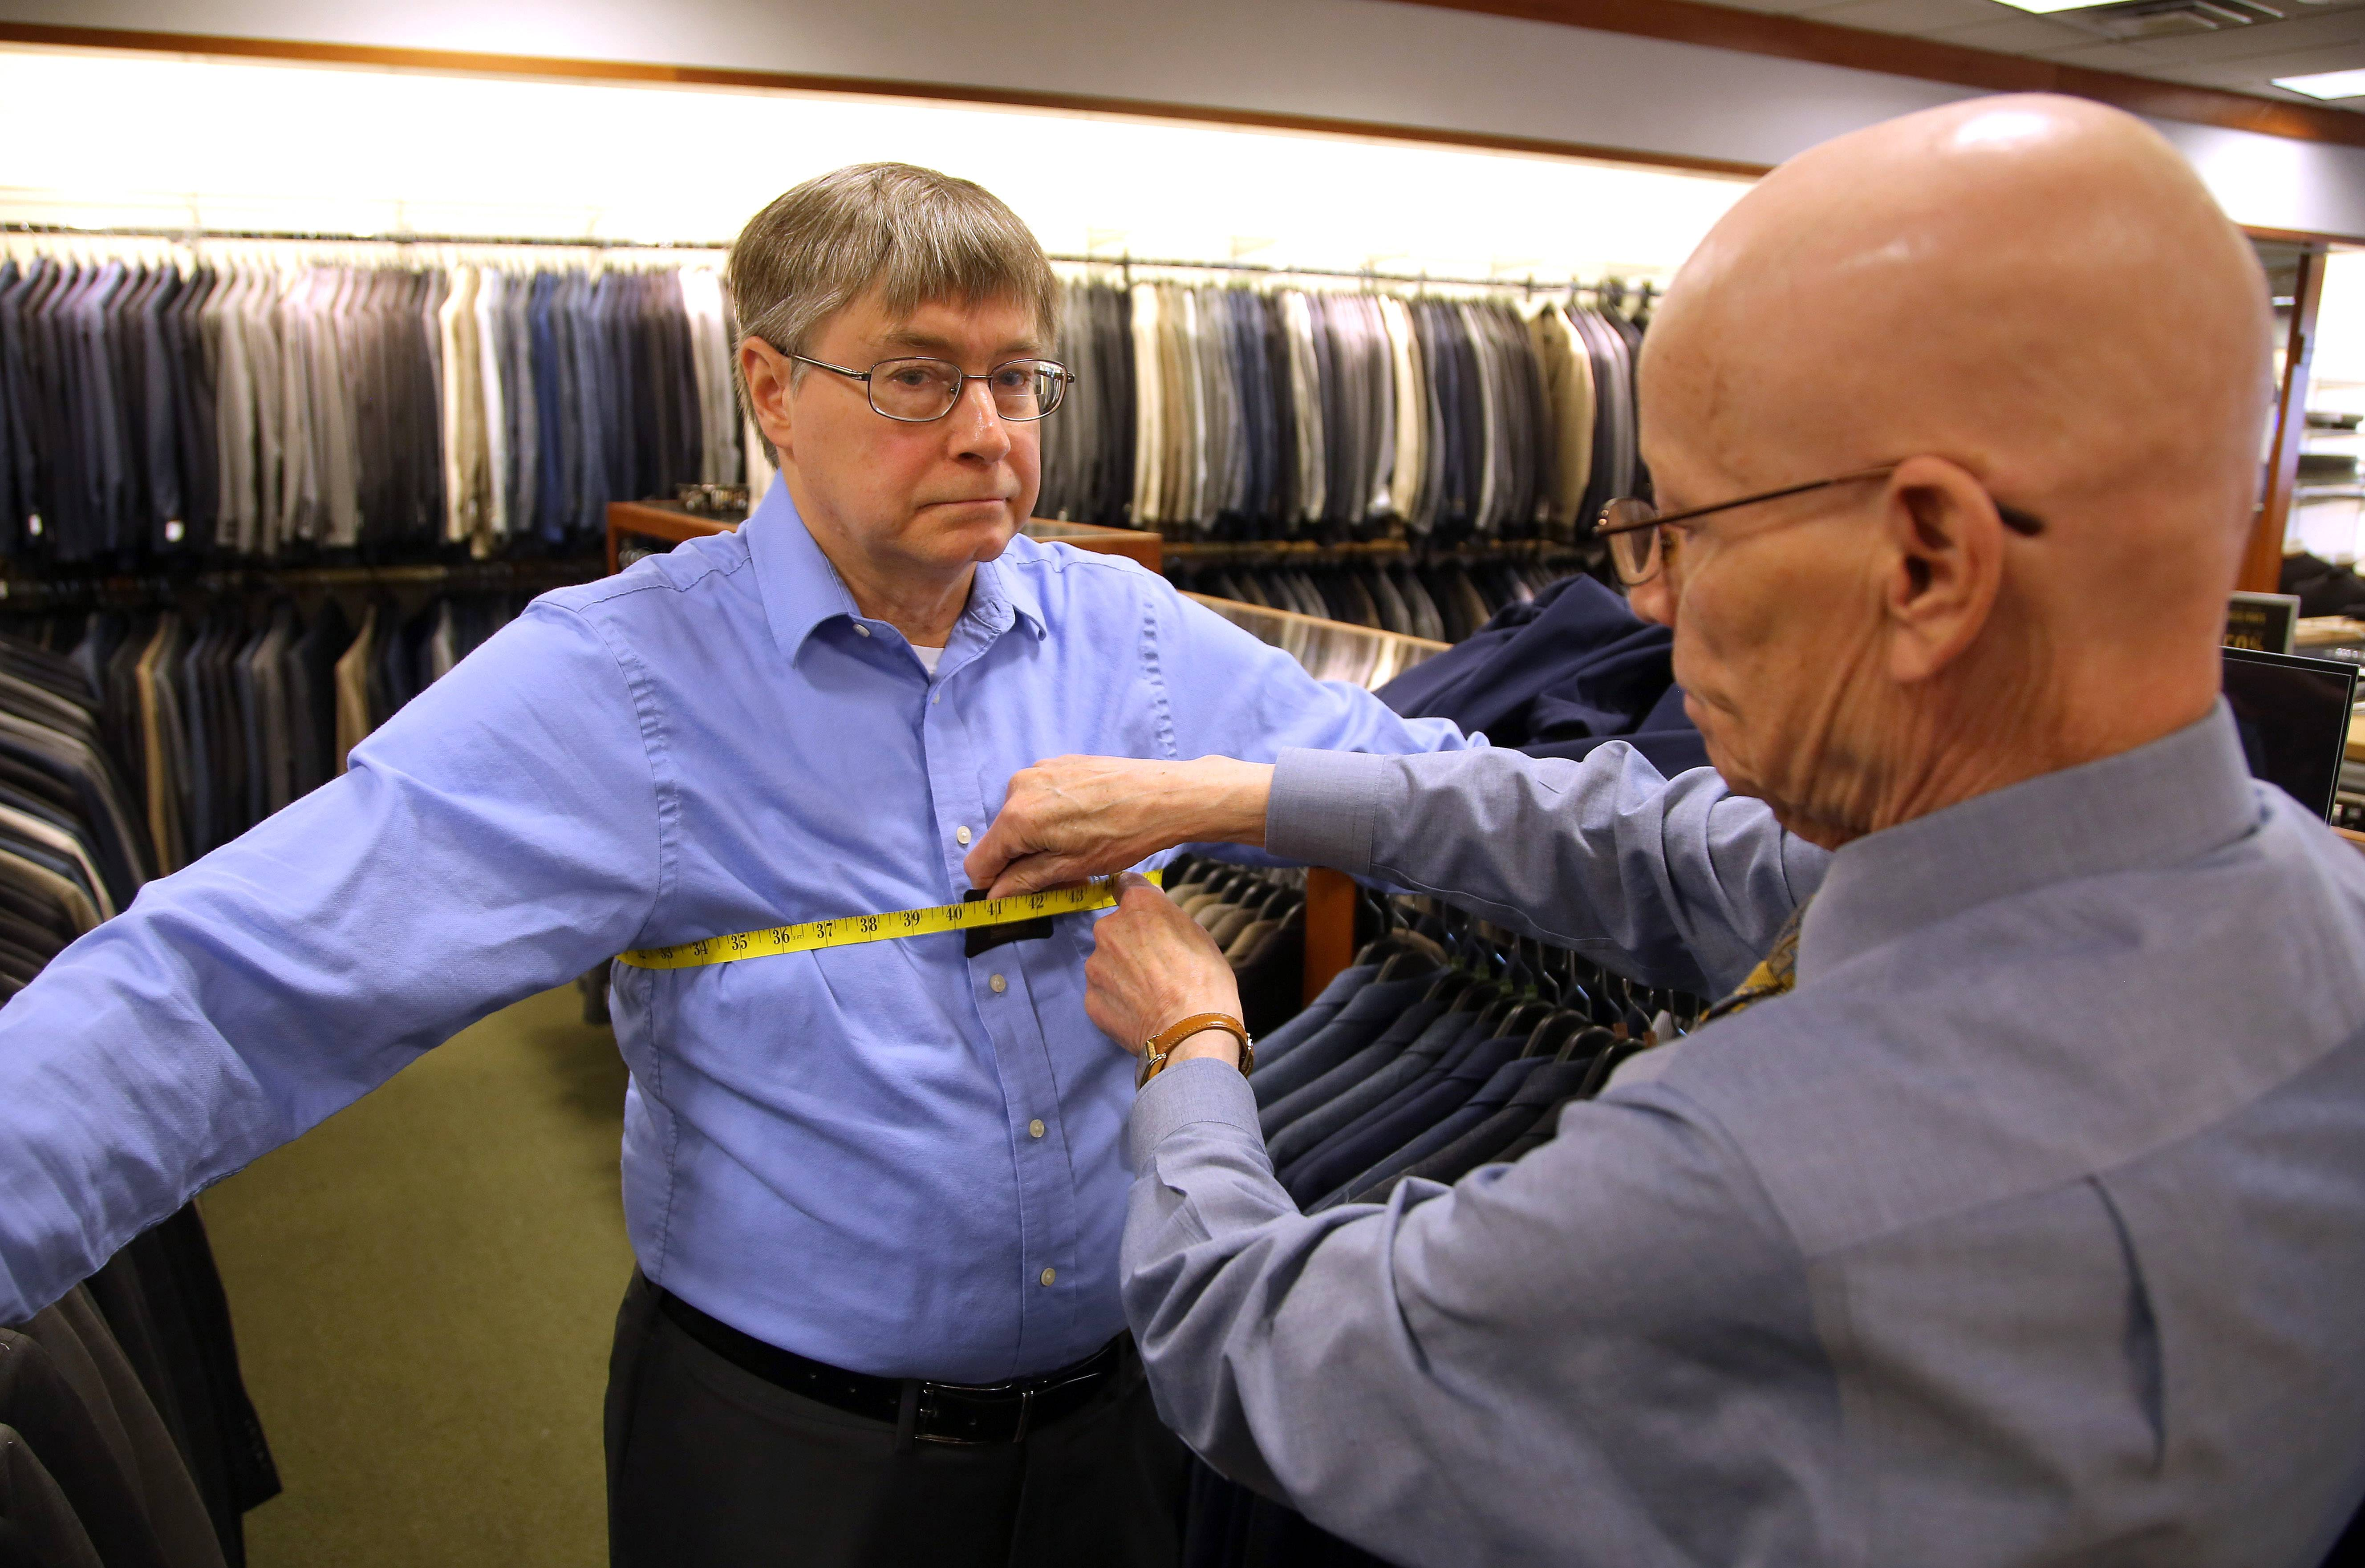 Steve Lundy/slundy@dailyherald.comFittest Loser contestant Dave Gathman of Elgin gets measured by Dennis Carnehl at Jos. A. Bank in Deer Park Mall Tuesday.